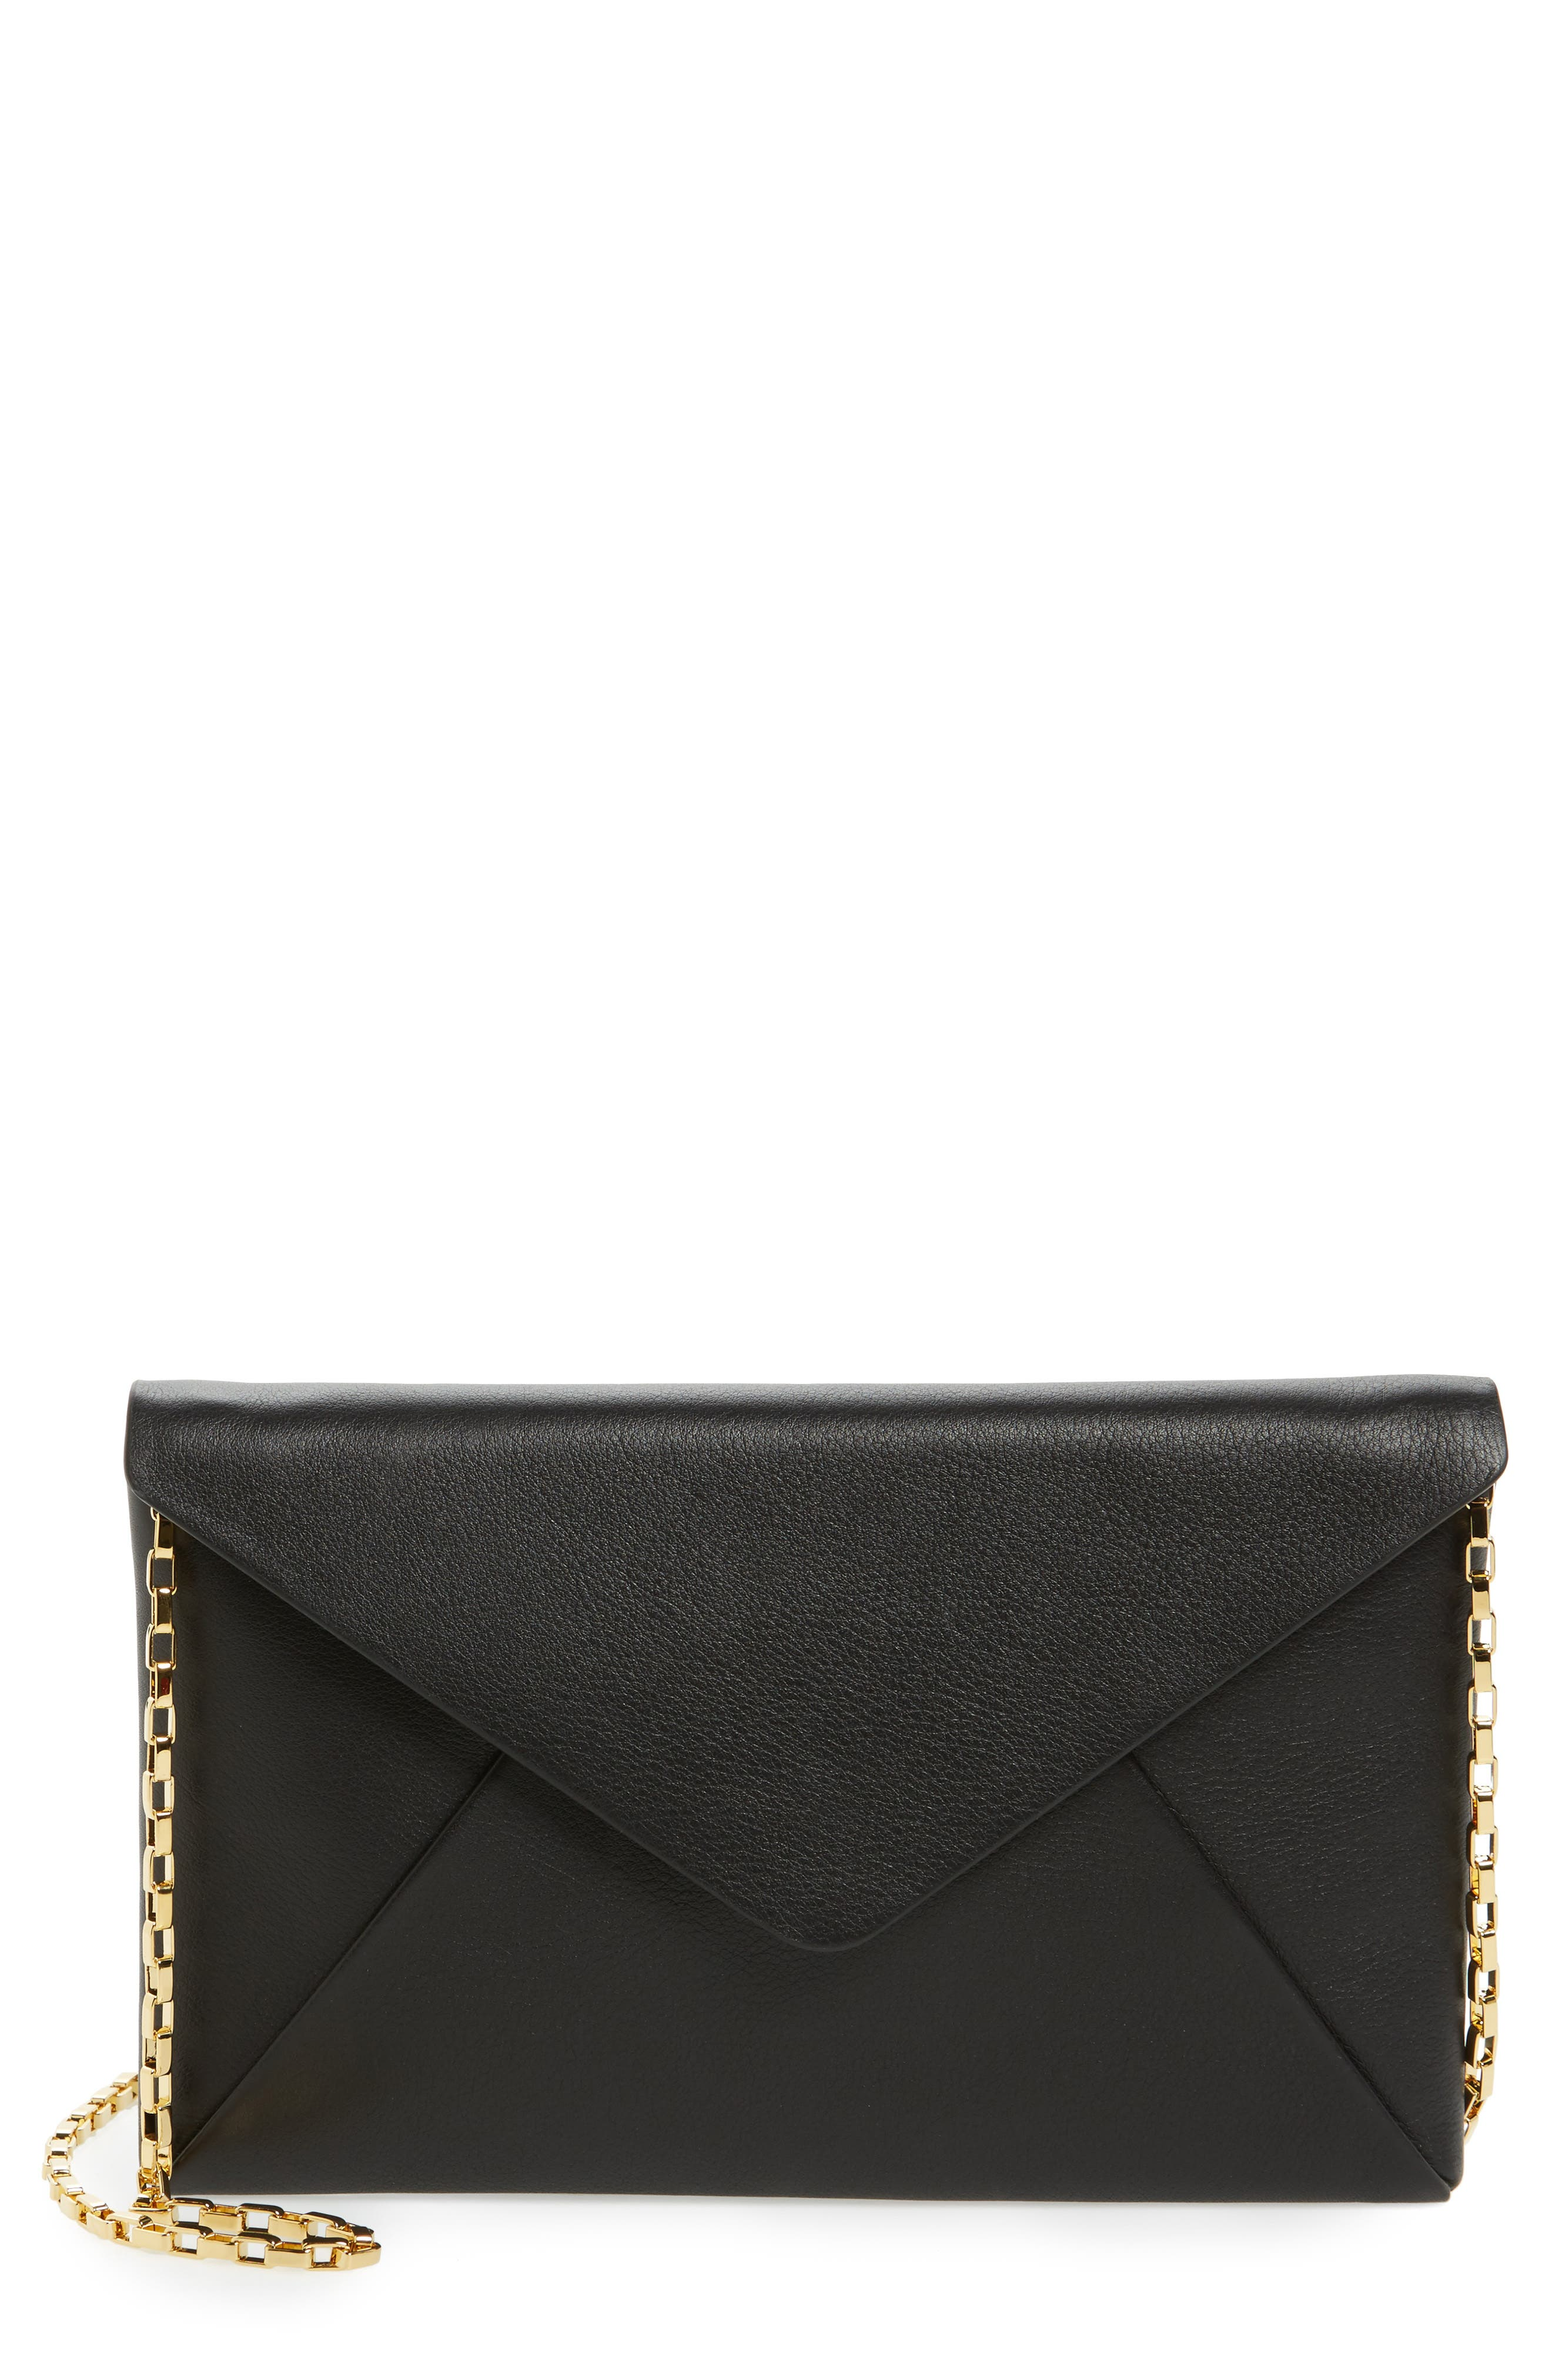 Small Calfskin Leather Envelope Clutch,                             Main thumbnail 1, color,                             001